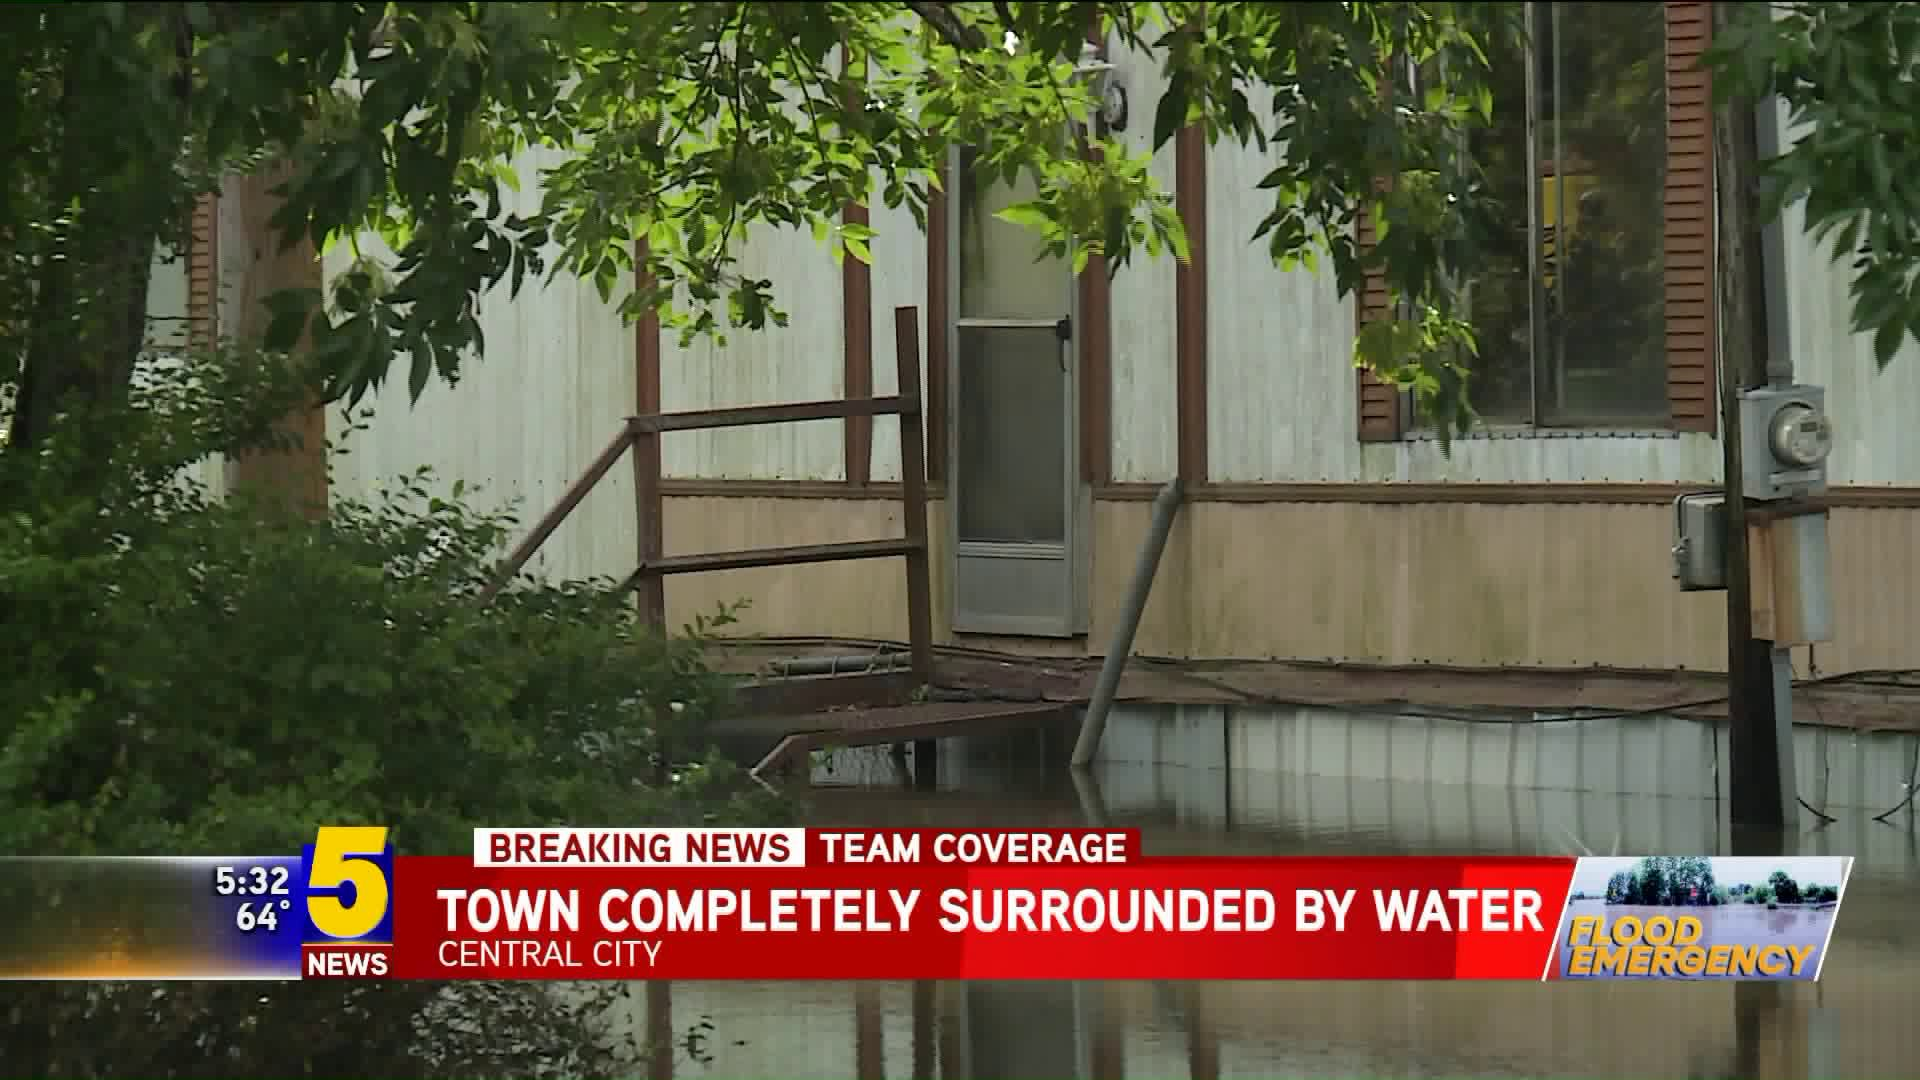 Central City Residents Focus On Family, Friends During Flooding Aftermath thumbnail